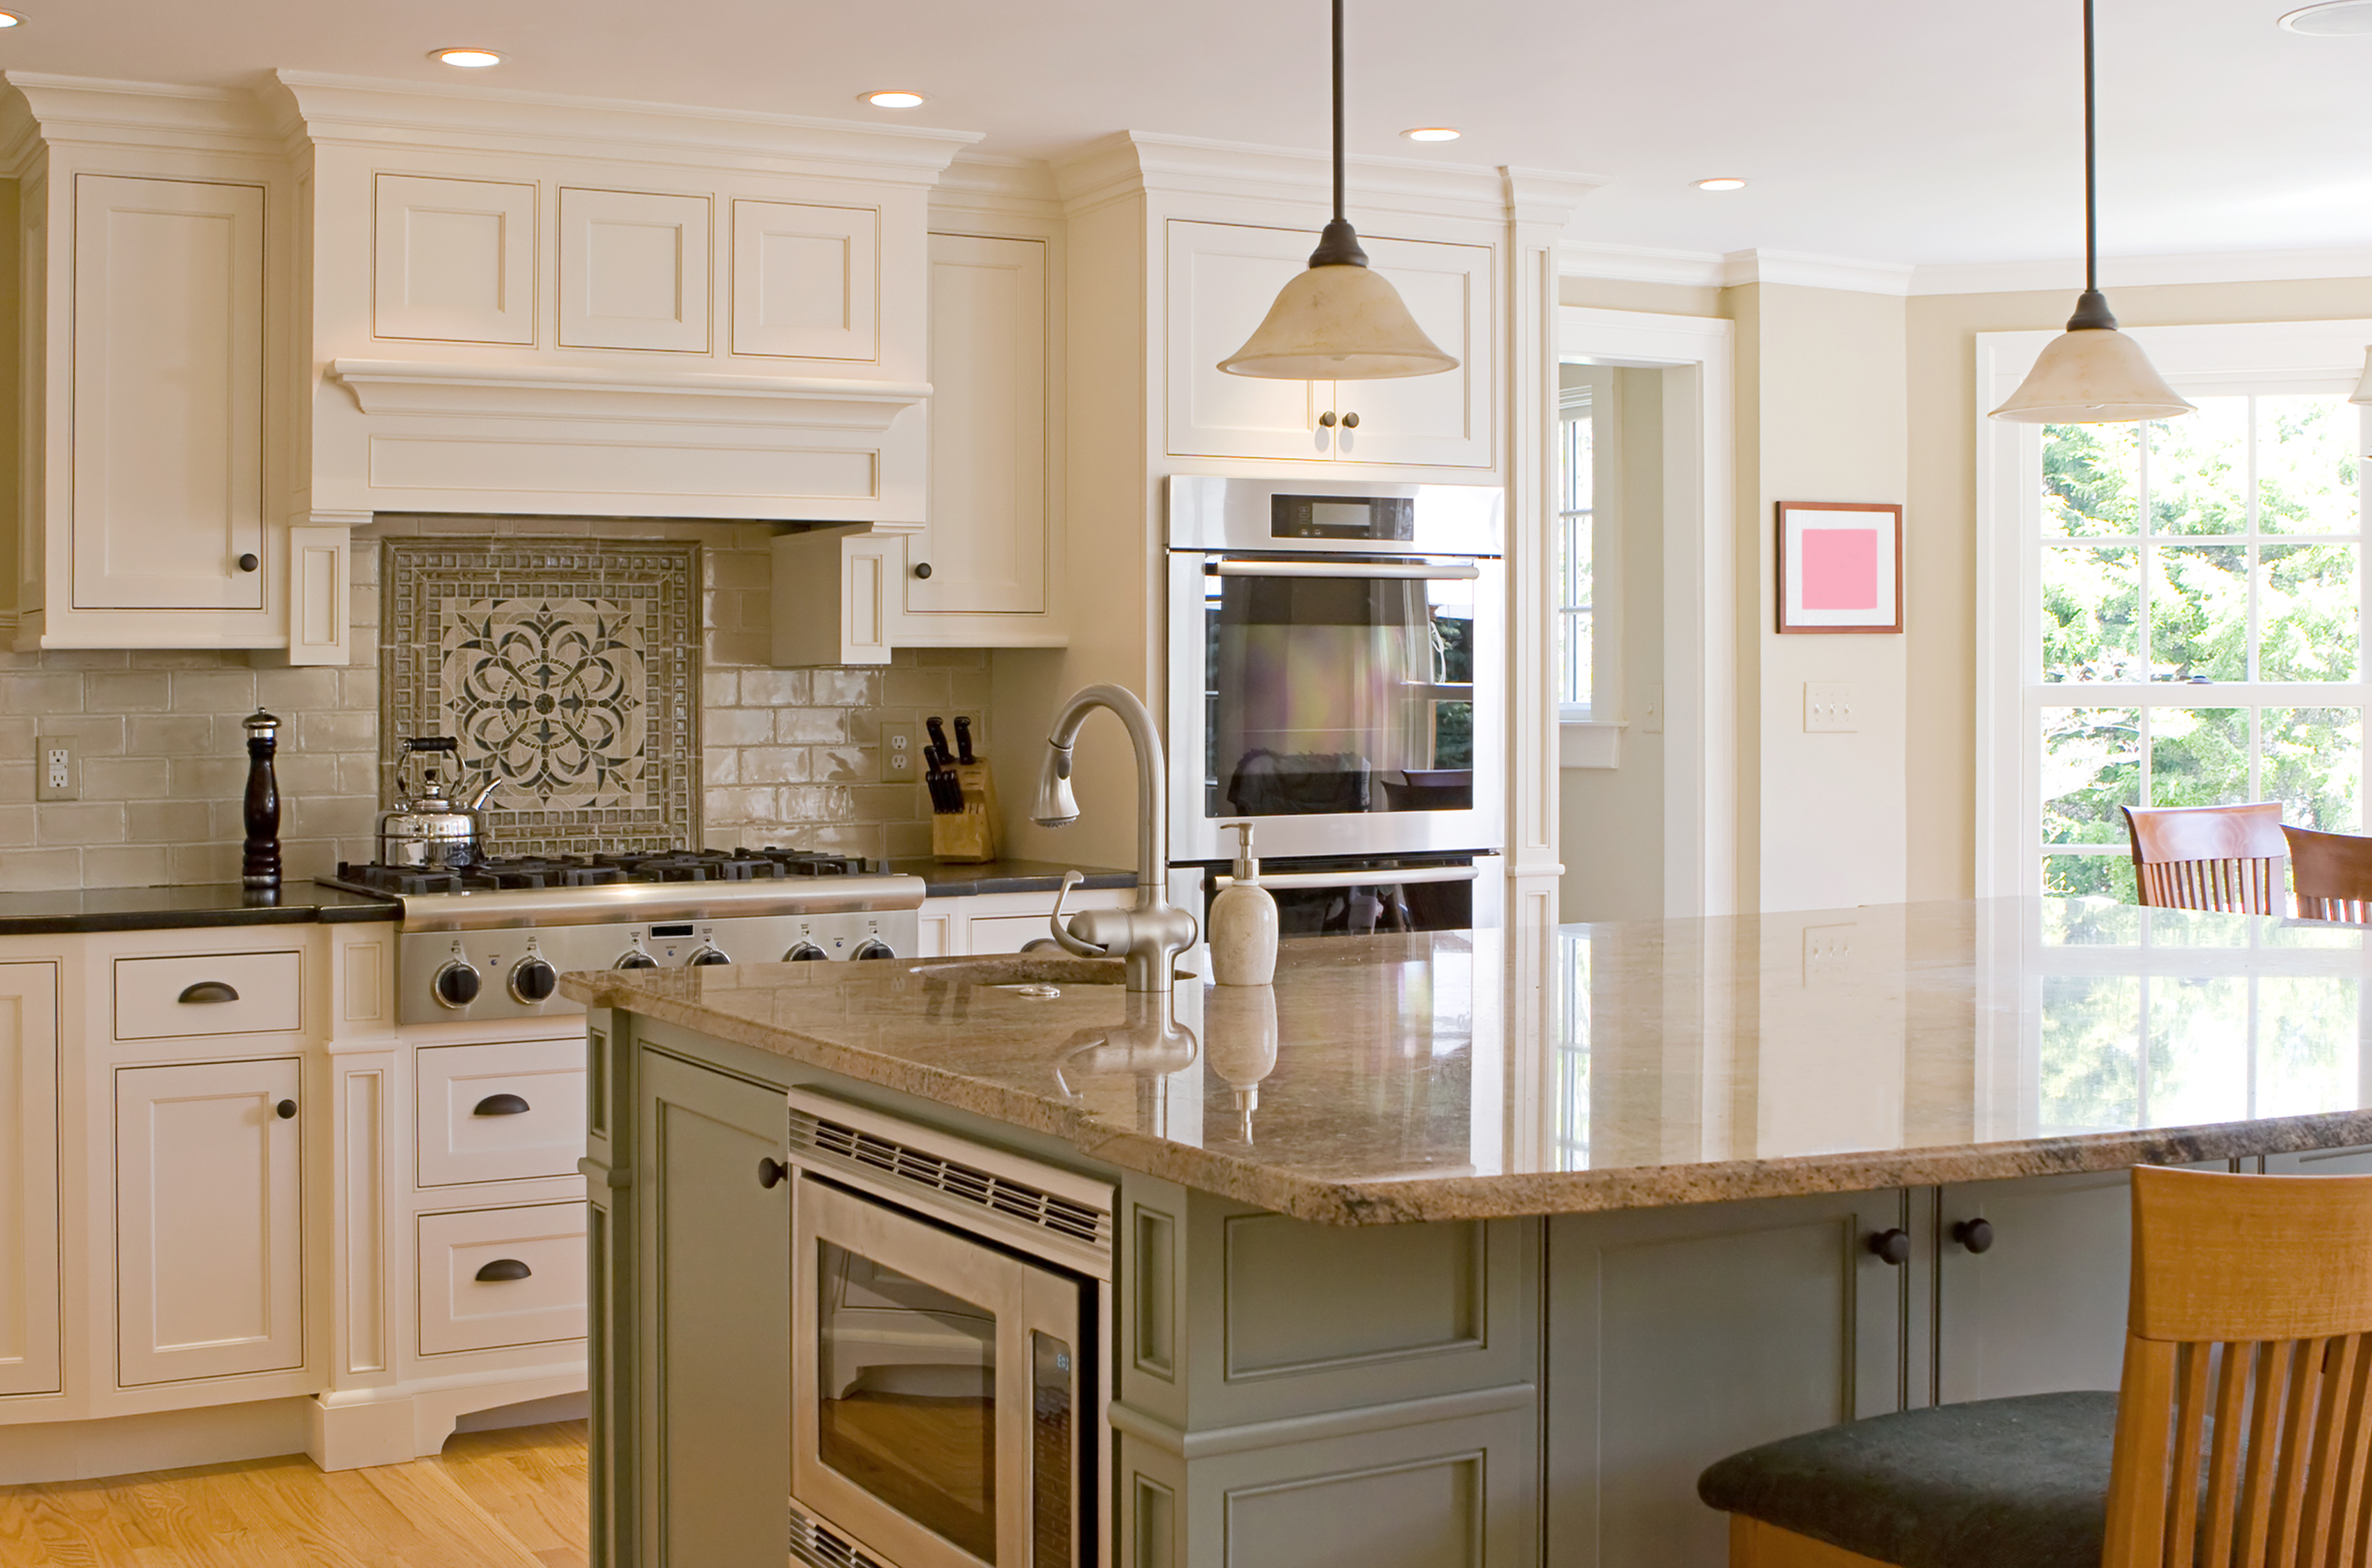 amazon kitchen cabinet doors sets on sale the standard overhang of a countertop | home ...